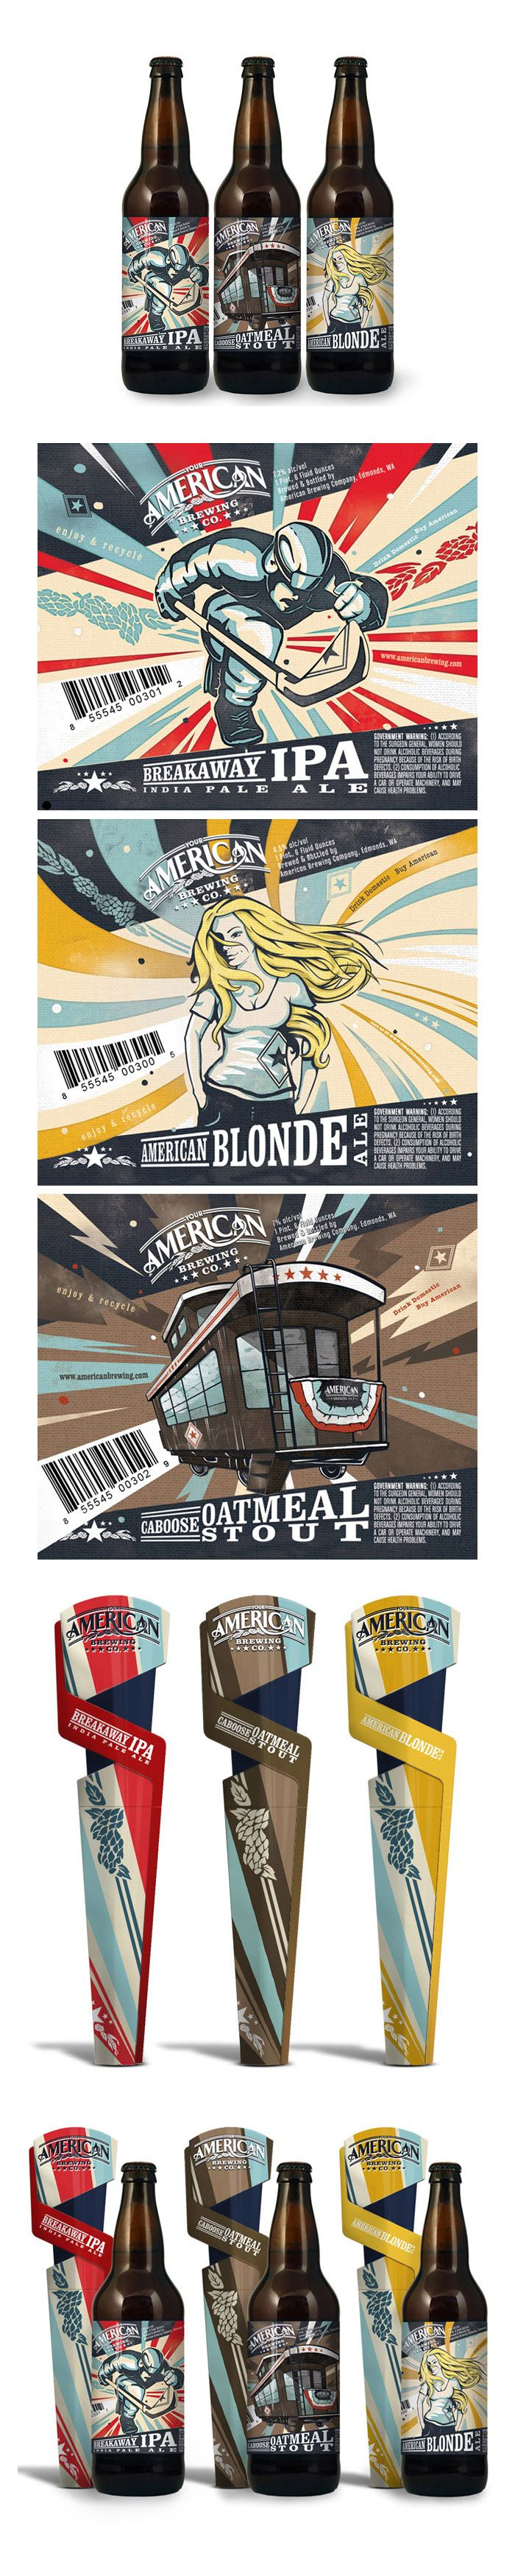 American Brewing Company. Terrific illustration style.